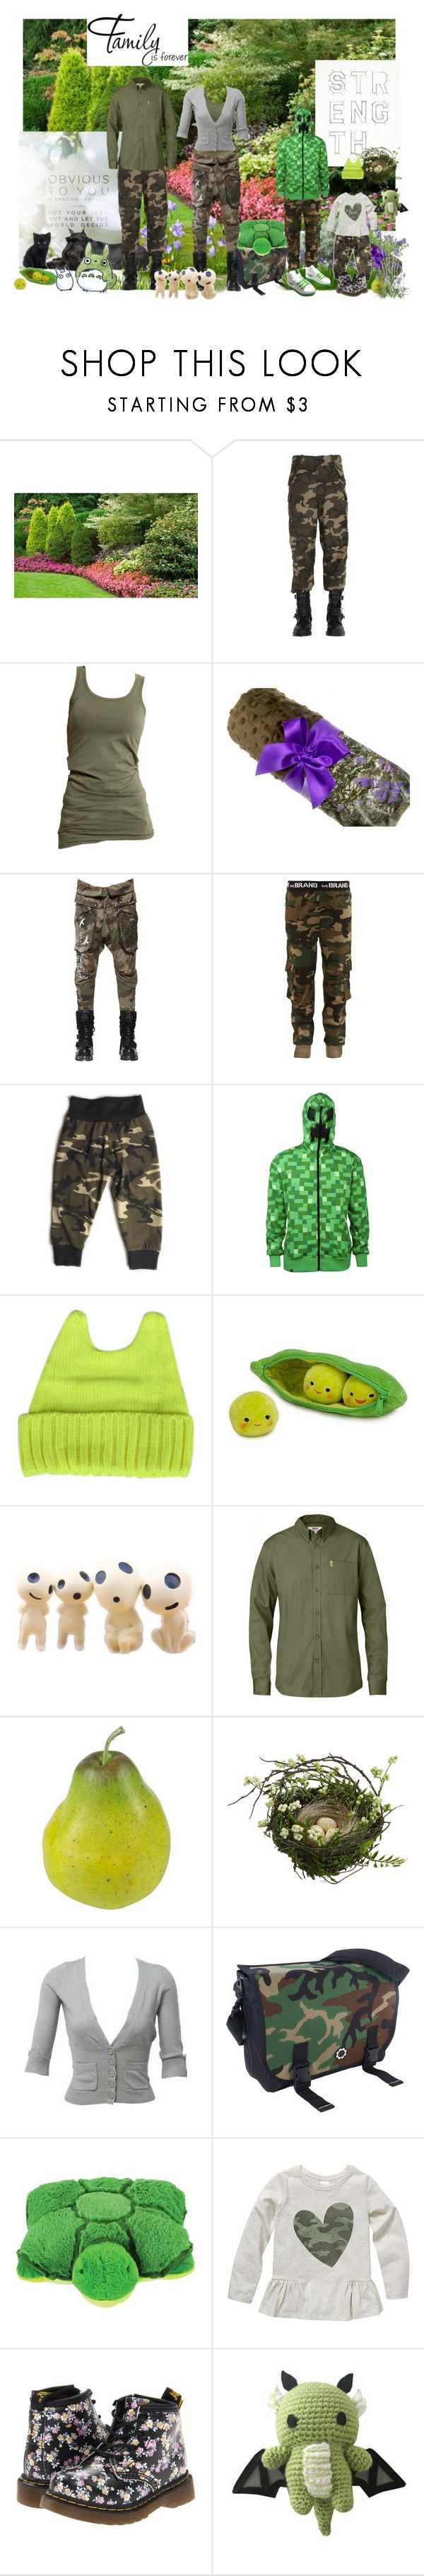 """Family Outing"" by verysmallgoddess ❤ liked on Polyvore featuring Faith Connexion, Vila Milano, Minecraft, Disney, Fjällräven, Nearly Natural, DadGear, Pillow Pets, Dr. Martens and WALL"